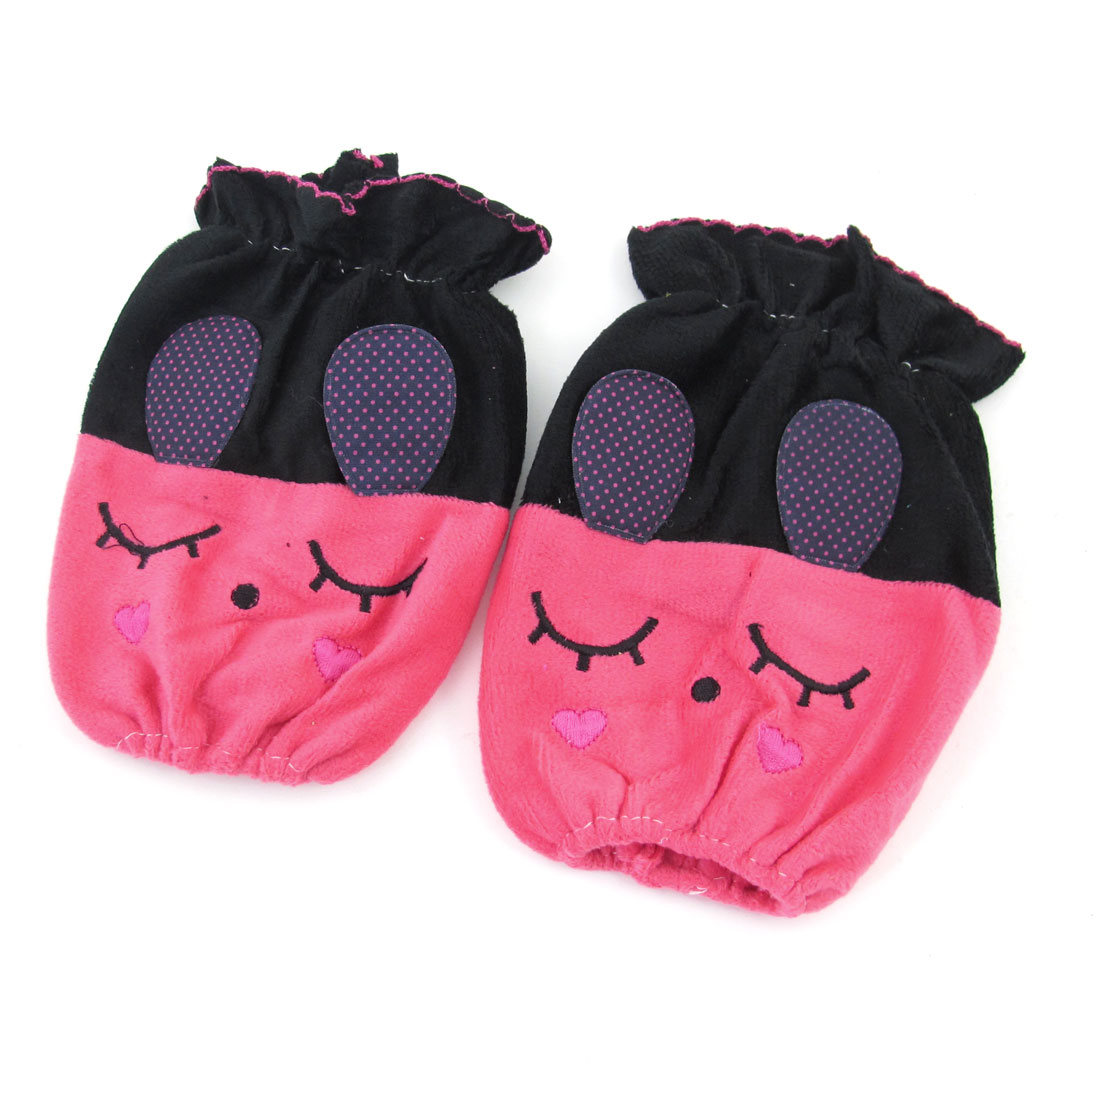 School Students Fuchsia Black Cute Rabbit Design Stretch Cuff Sleevelet Pair